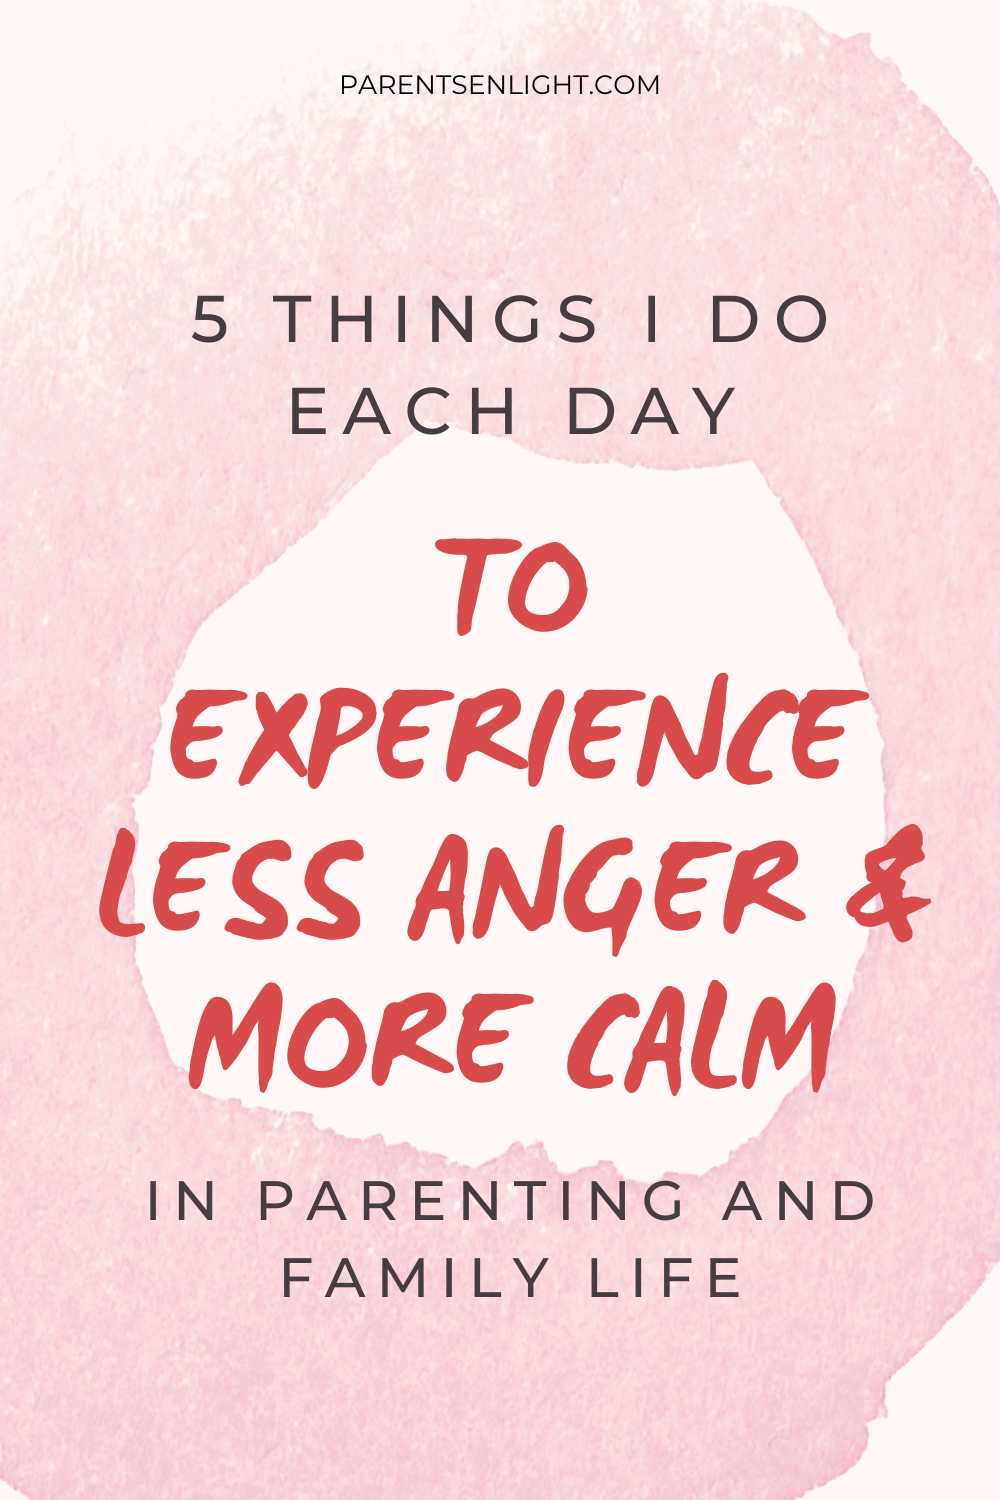 Feeling constantly angry, irritable, and impatient? Can't handle the fights and the power struggles? Here's a clear plan to create more calm and less anger in parenting and family life #parentinghelp #mindfulness #nonviolentcomunication #youmatter #takecareofyou #angermanagement #mindfulparenting #peacefulparenting #positiveparenting